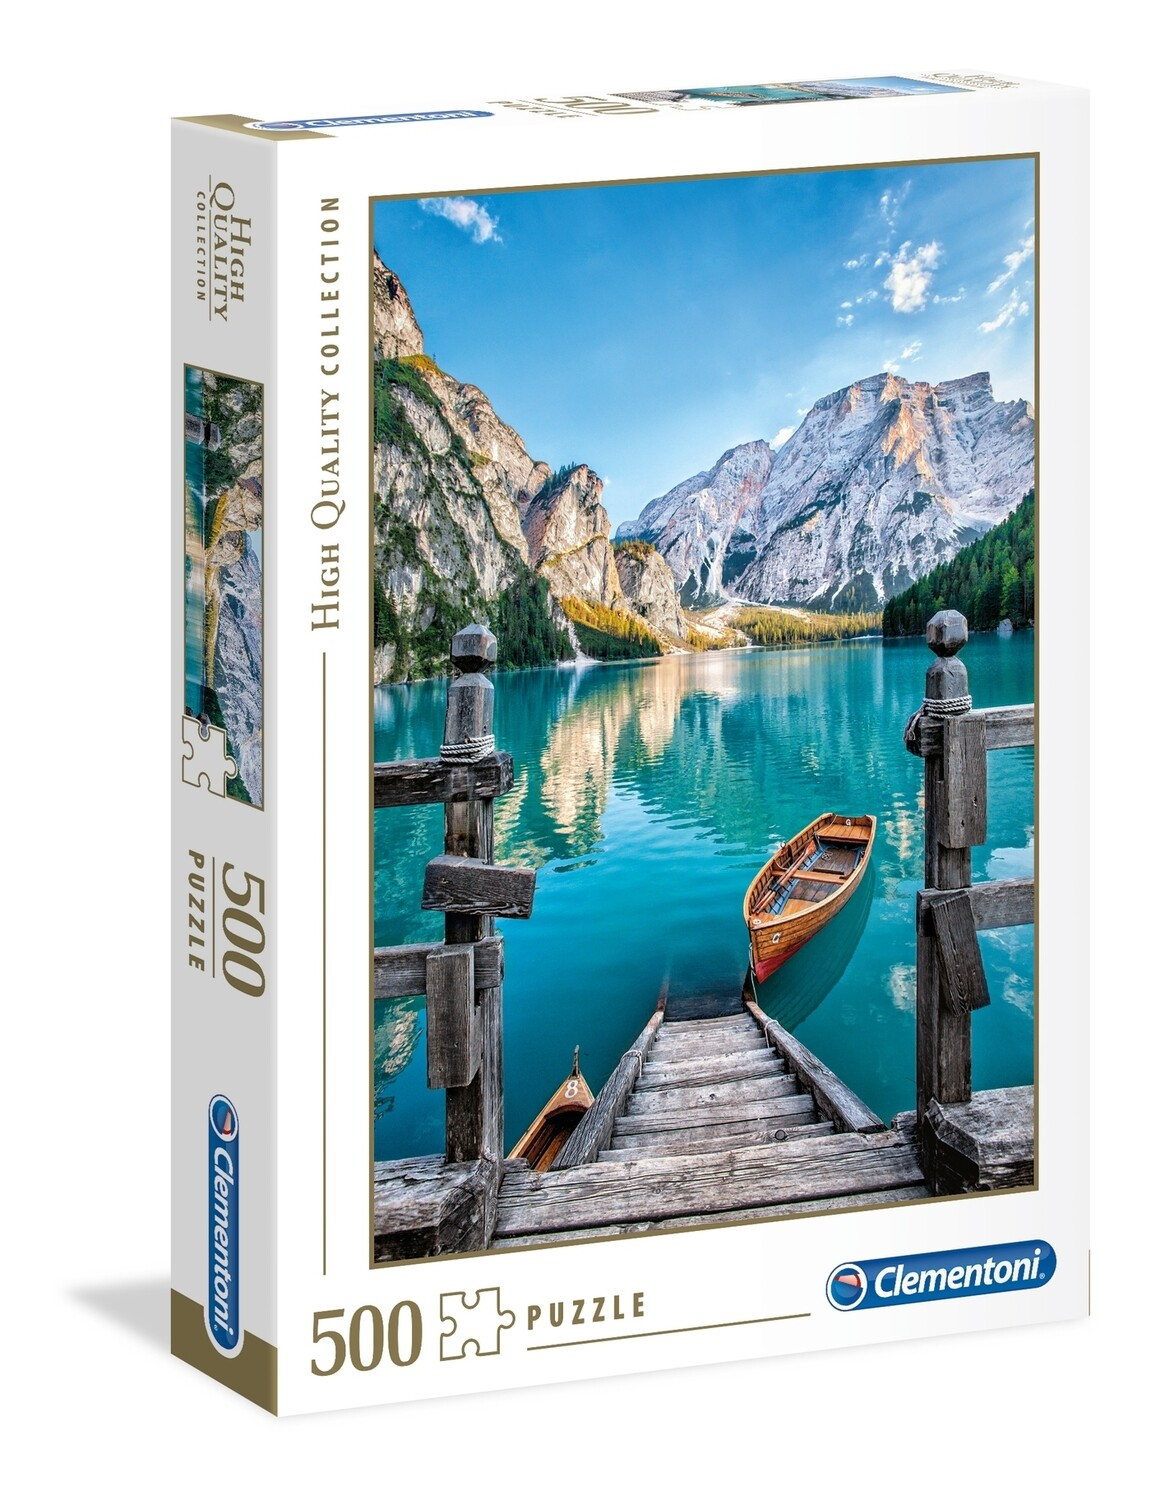 PUZZLE 500 HQ Braies Lake - CLEMENTONI